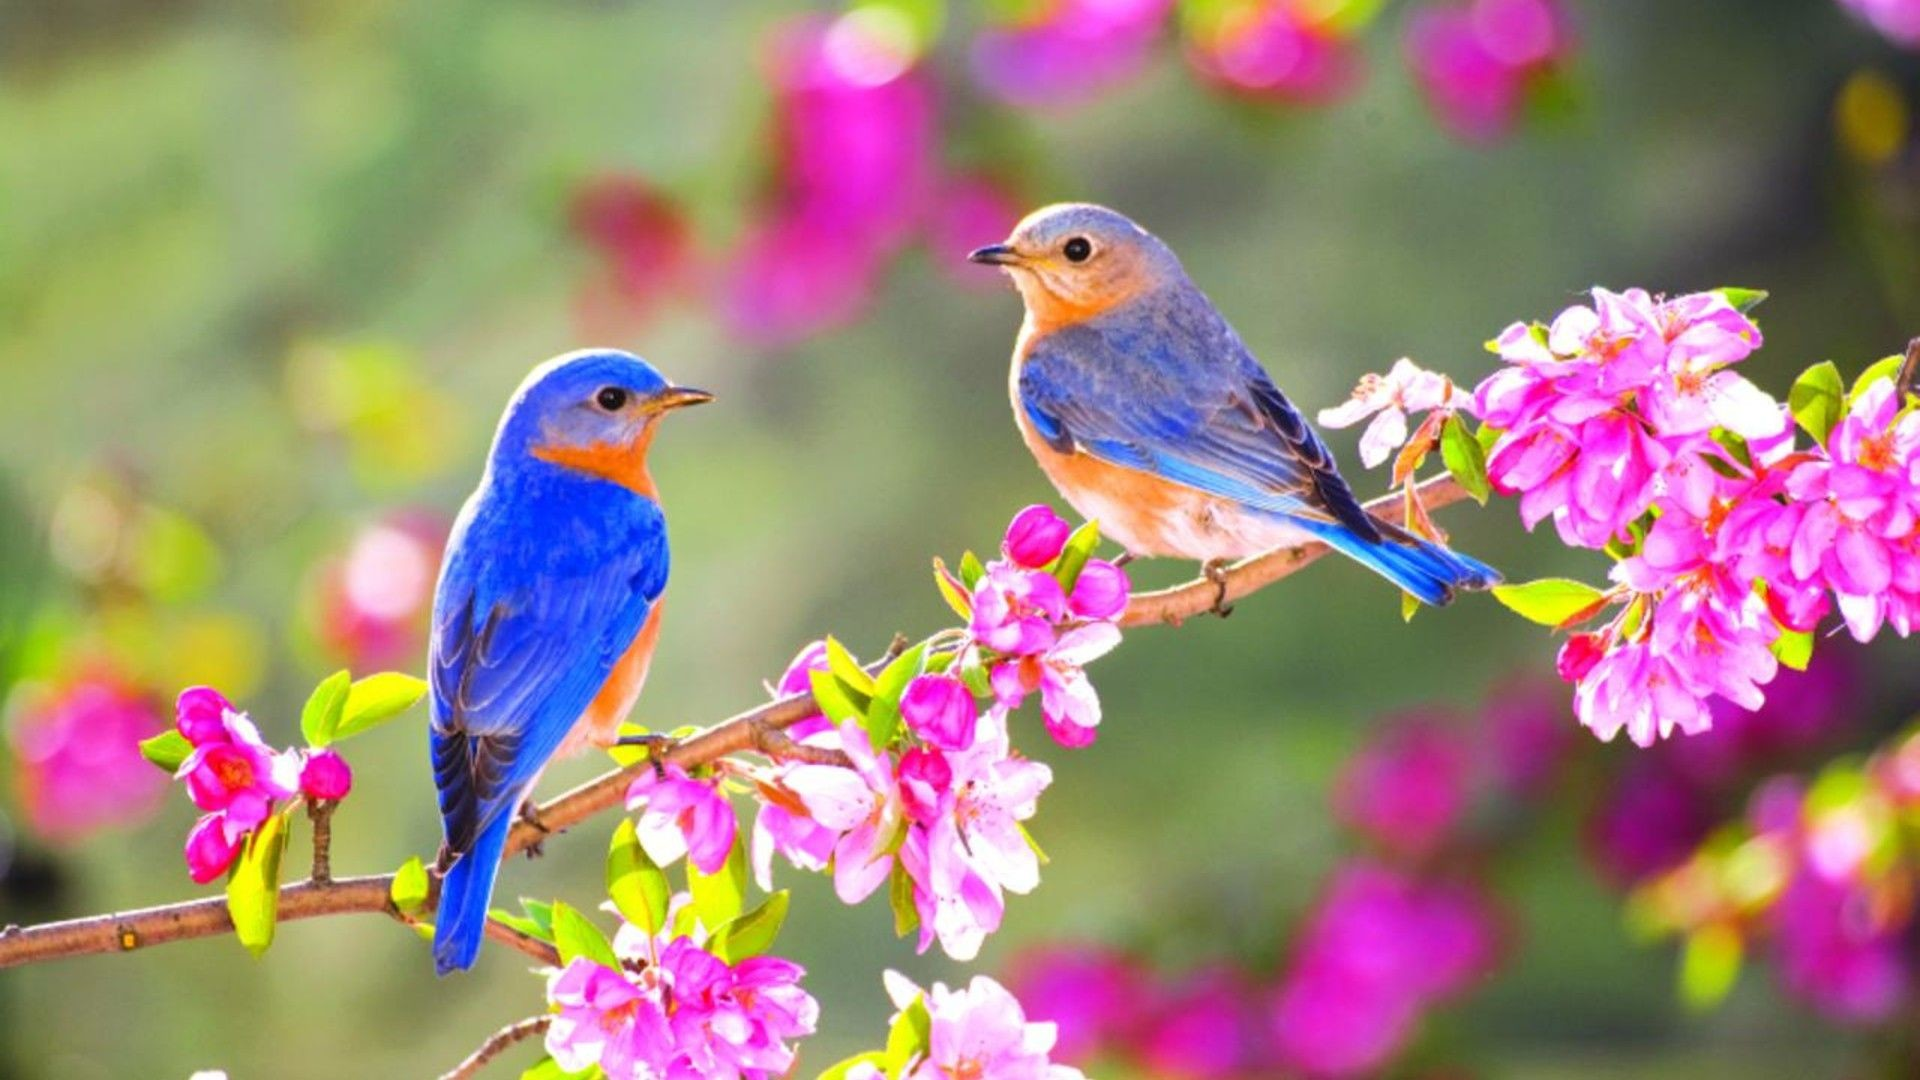 Wallpaper Download Lovely Two Little Blue Birds On Spring Flowers And Birds 1920x1080 Download Hd Wallpaper Wallpapertip